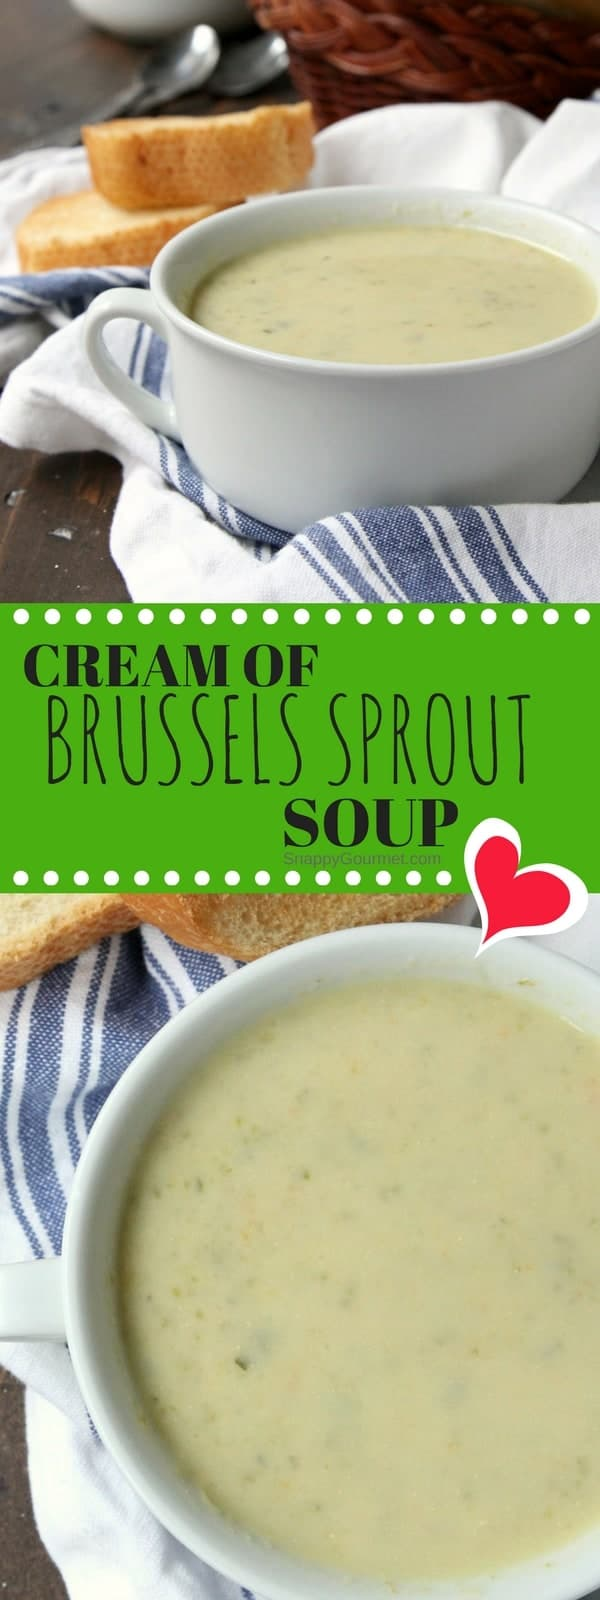 Cream of Brussels Sprout Soup Recipe - easy homemade vegetable soup recipe. SnappyGourmet.com #Soup #BrusselsSprouts #Vegetables #SnappyGourmet